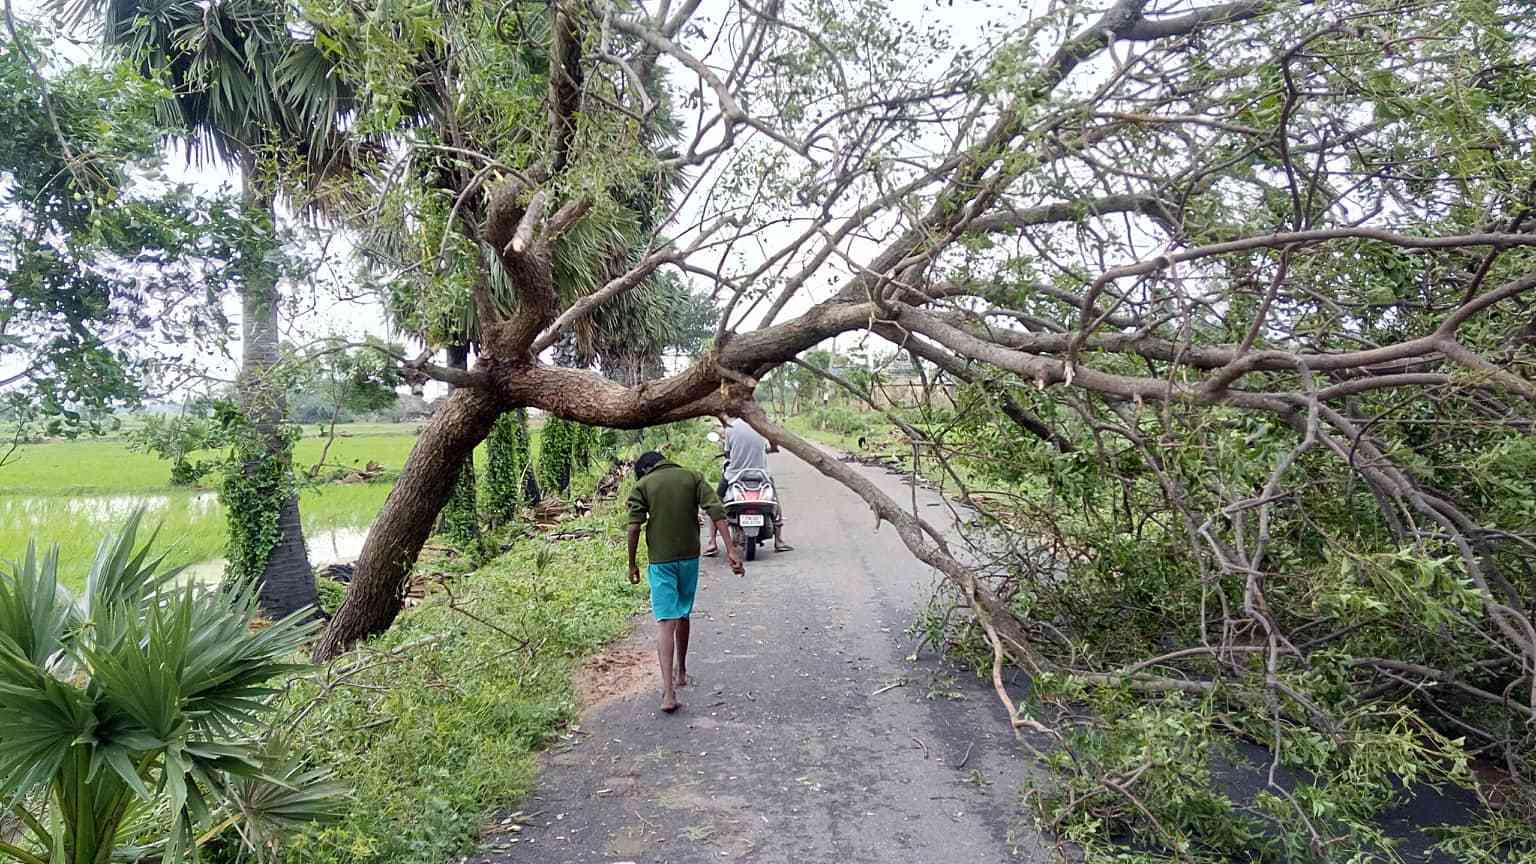 A tree fallen on a street in Nagapattinam district after the cyclone (Photo credit: Revathi)